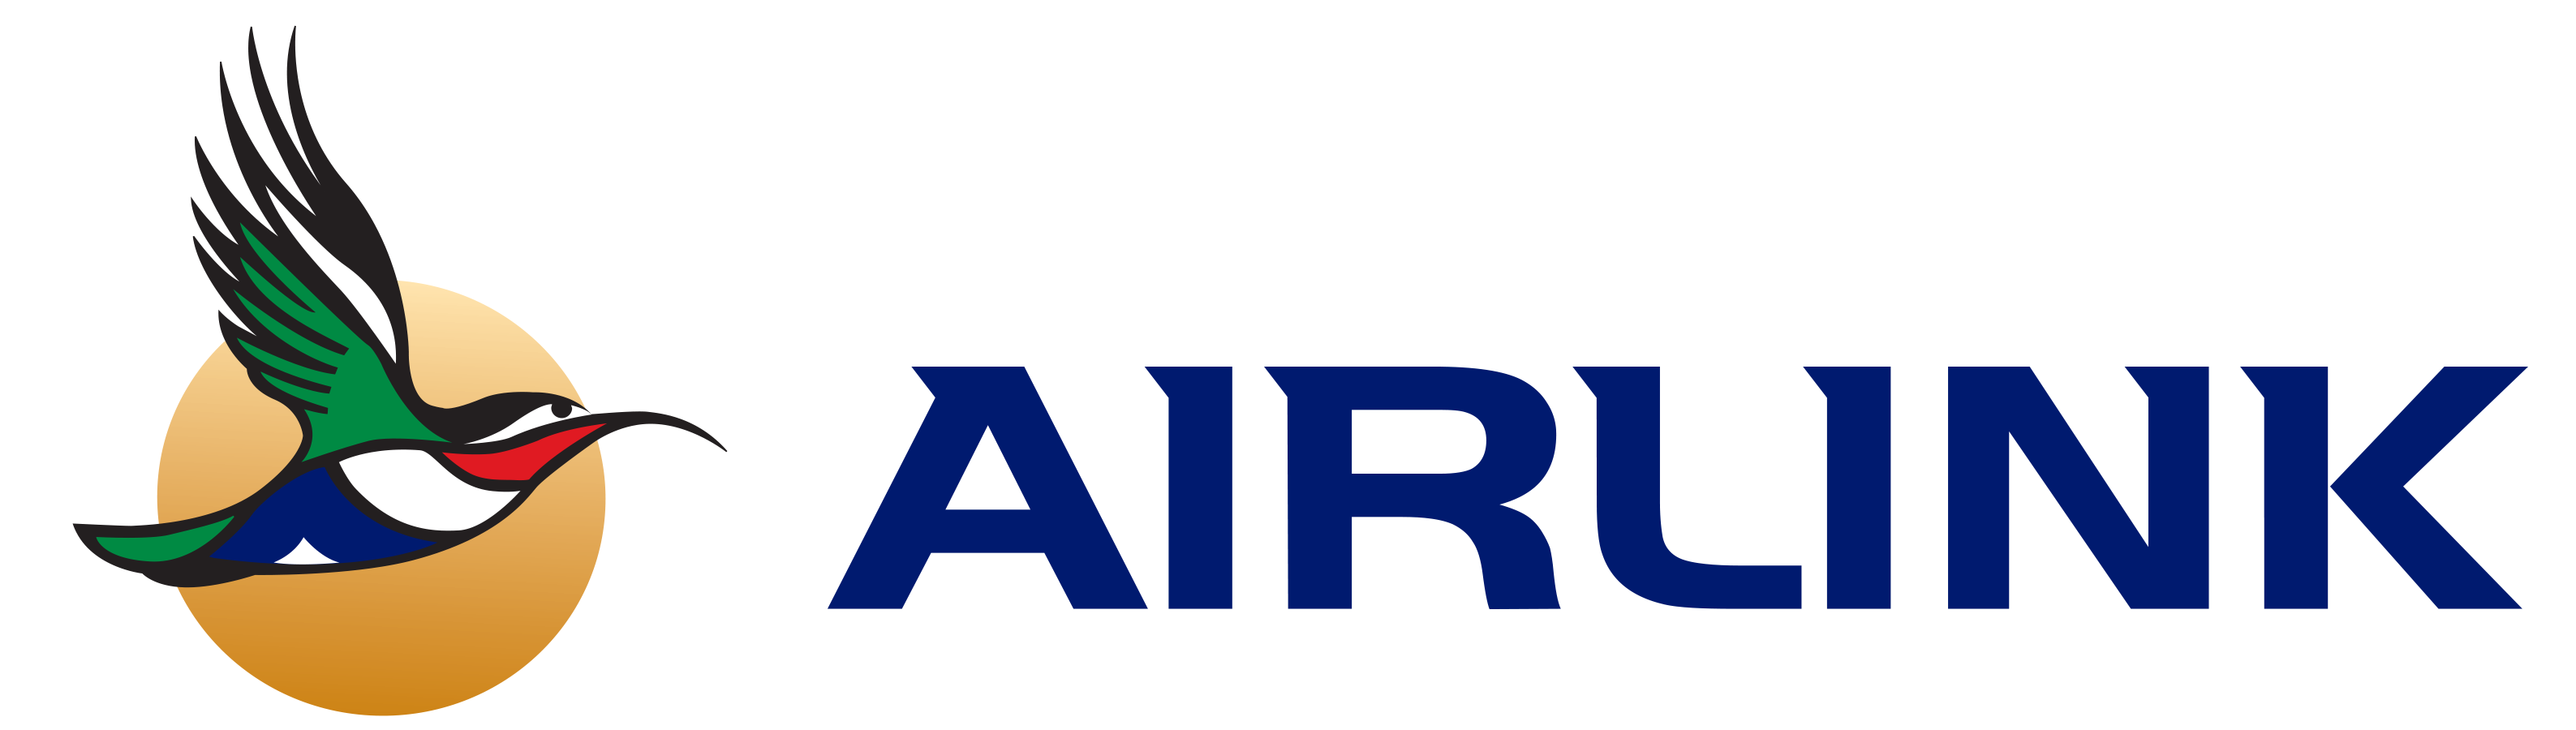 Airlink_Isologotype_sunbird